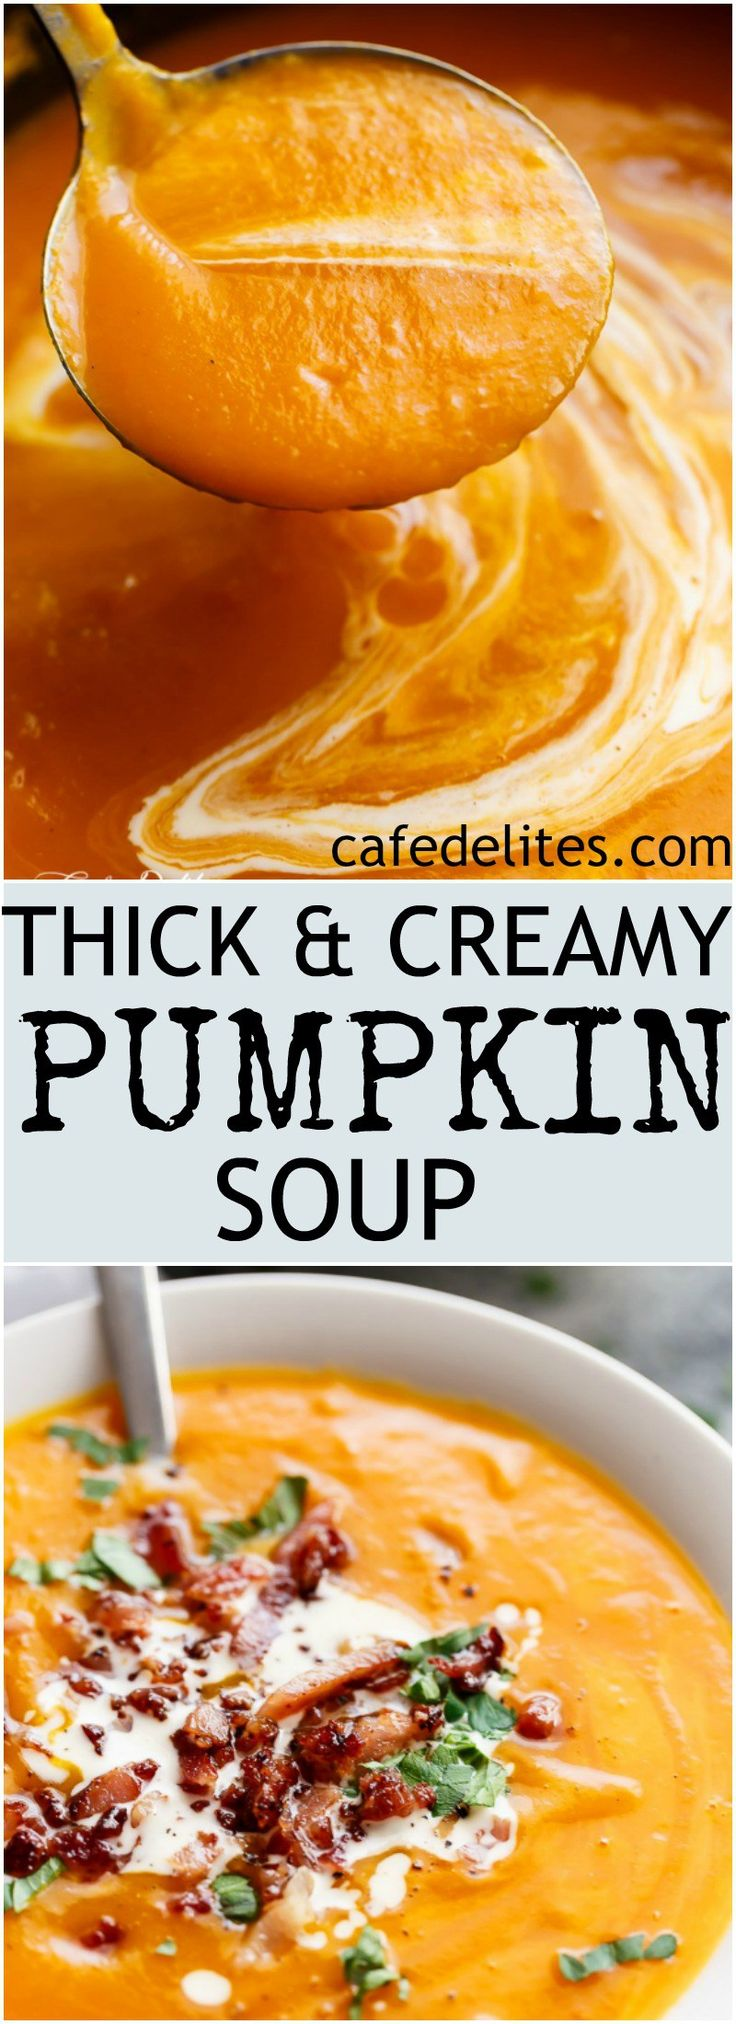 hick and Creamy Pumpkin Soup